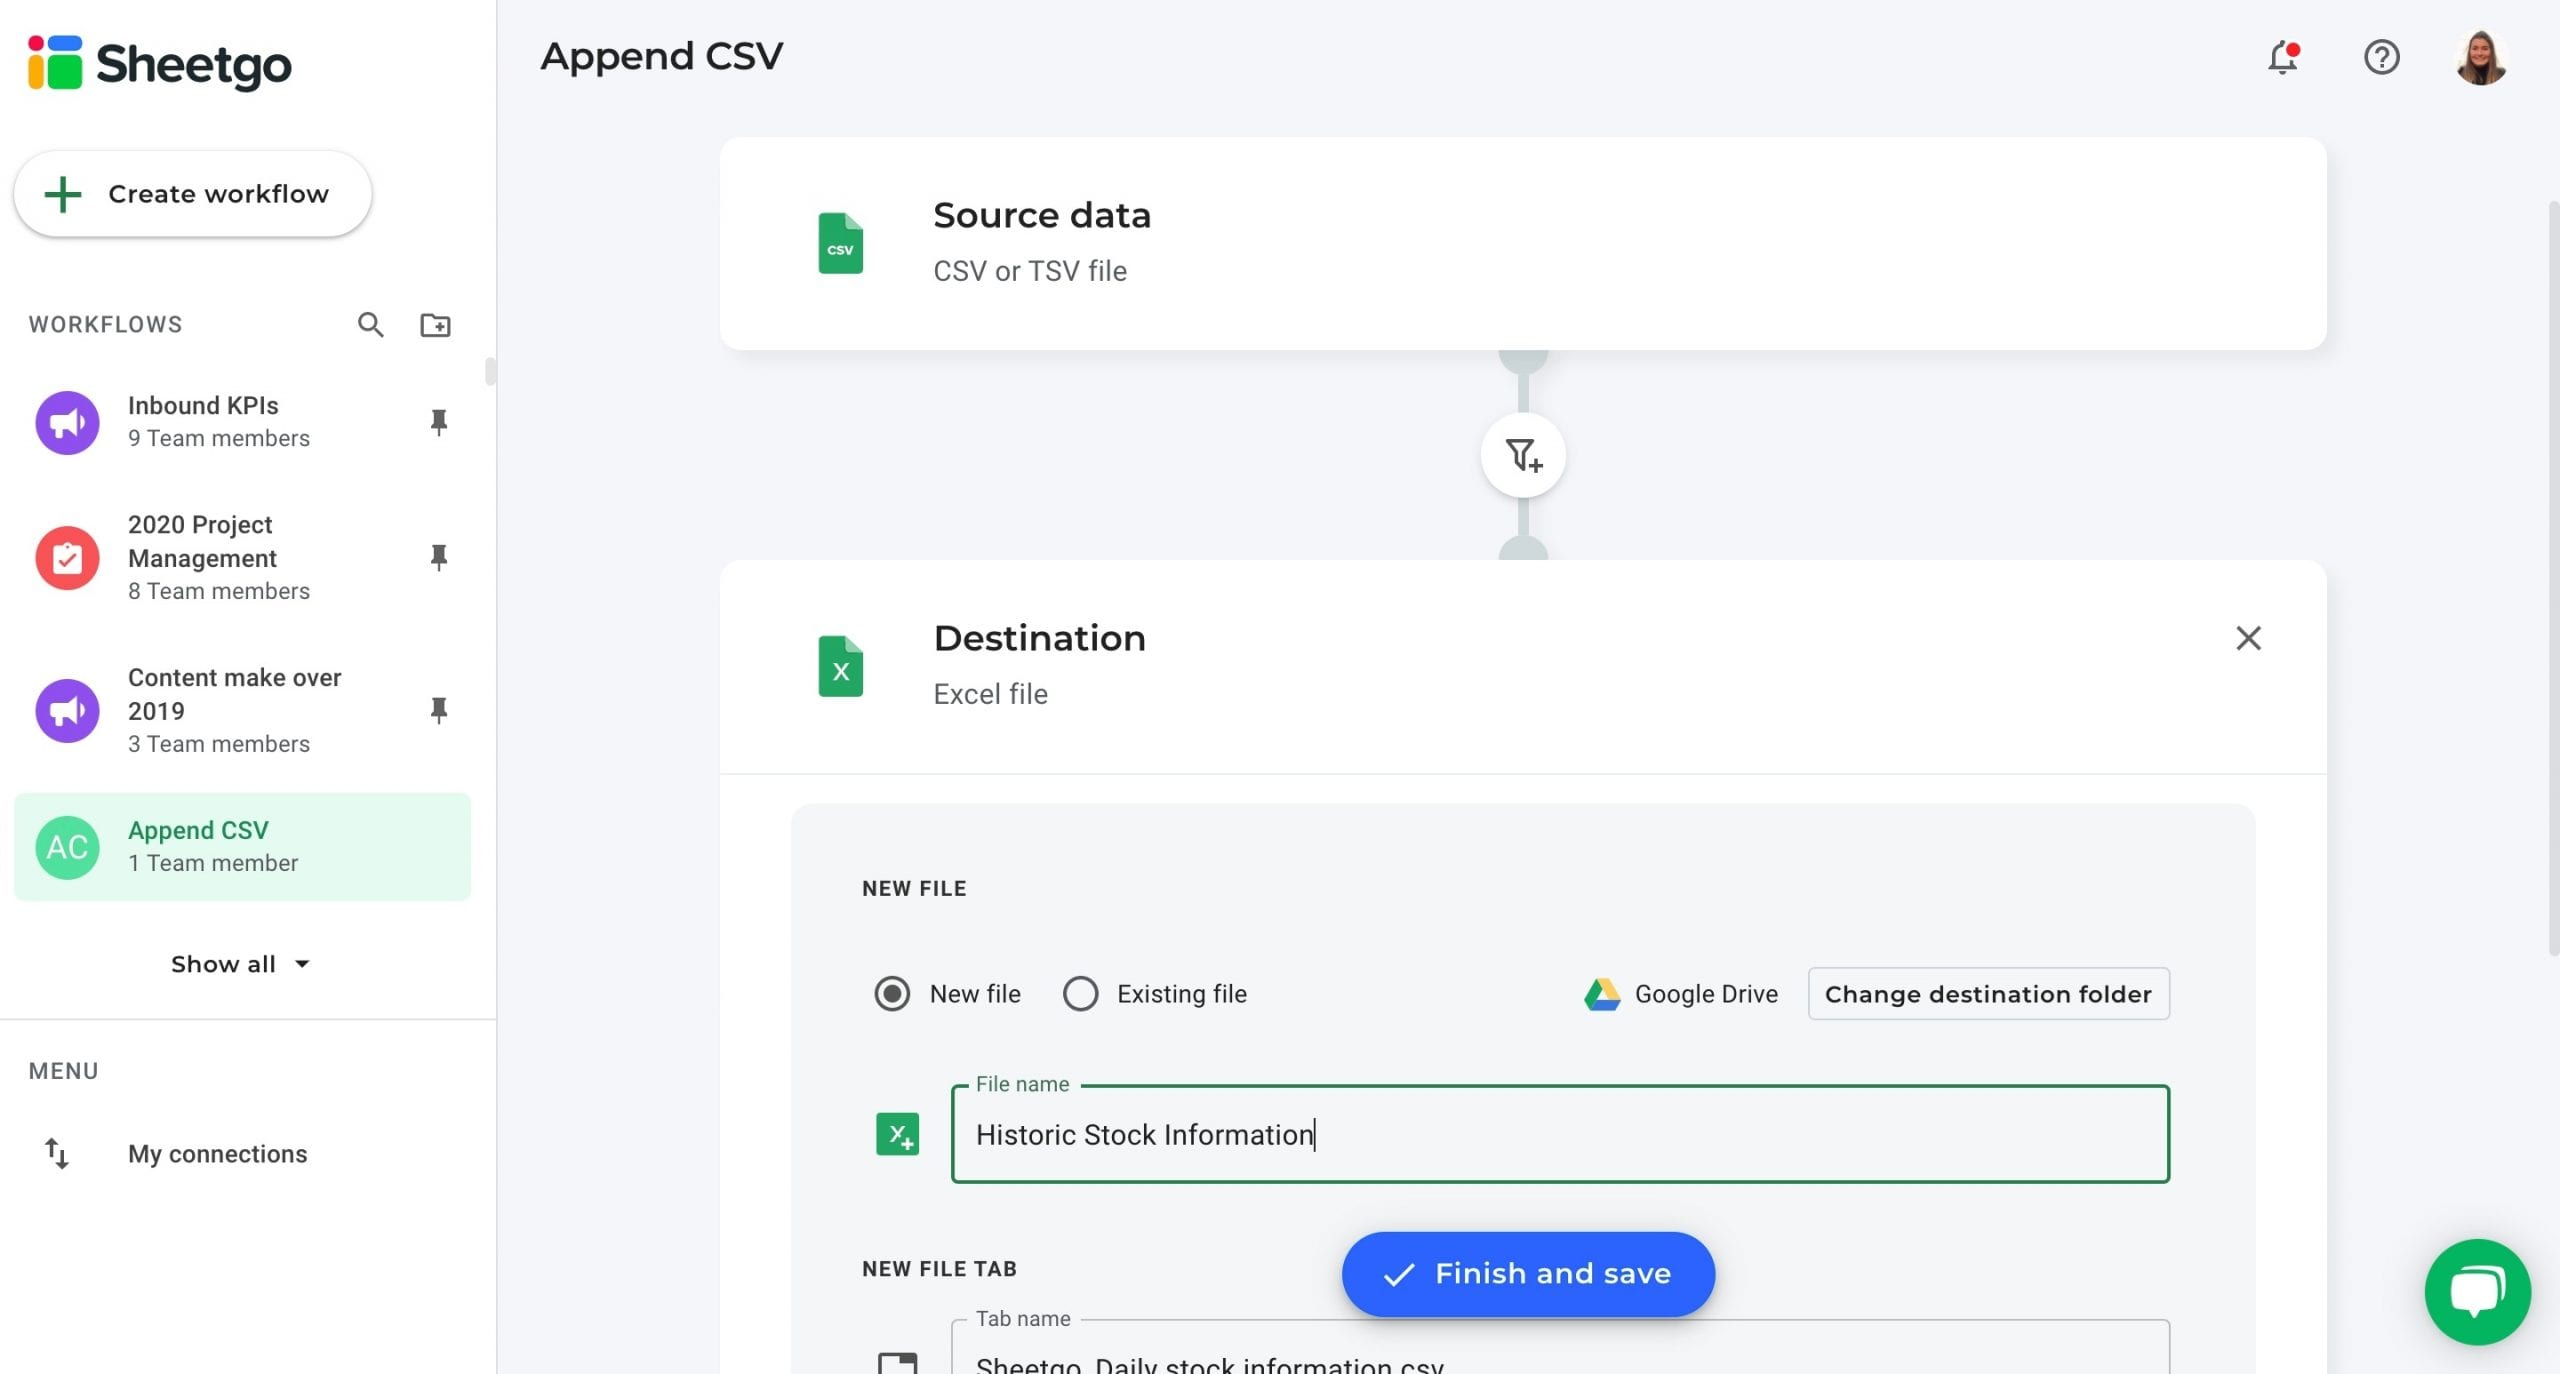 Append CSV data destination